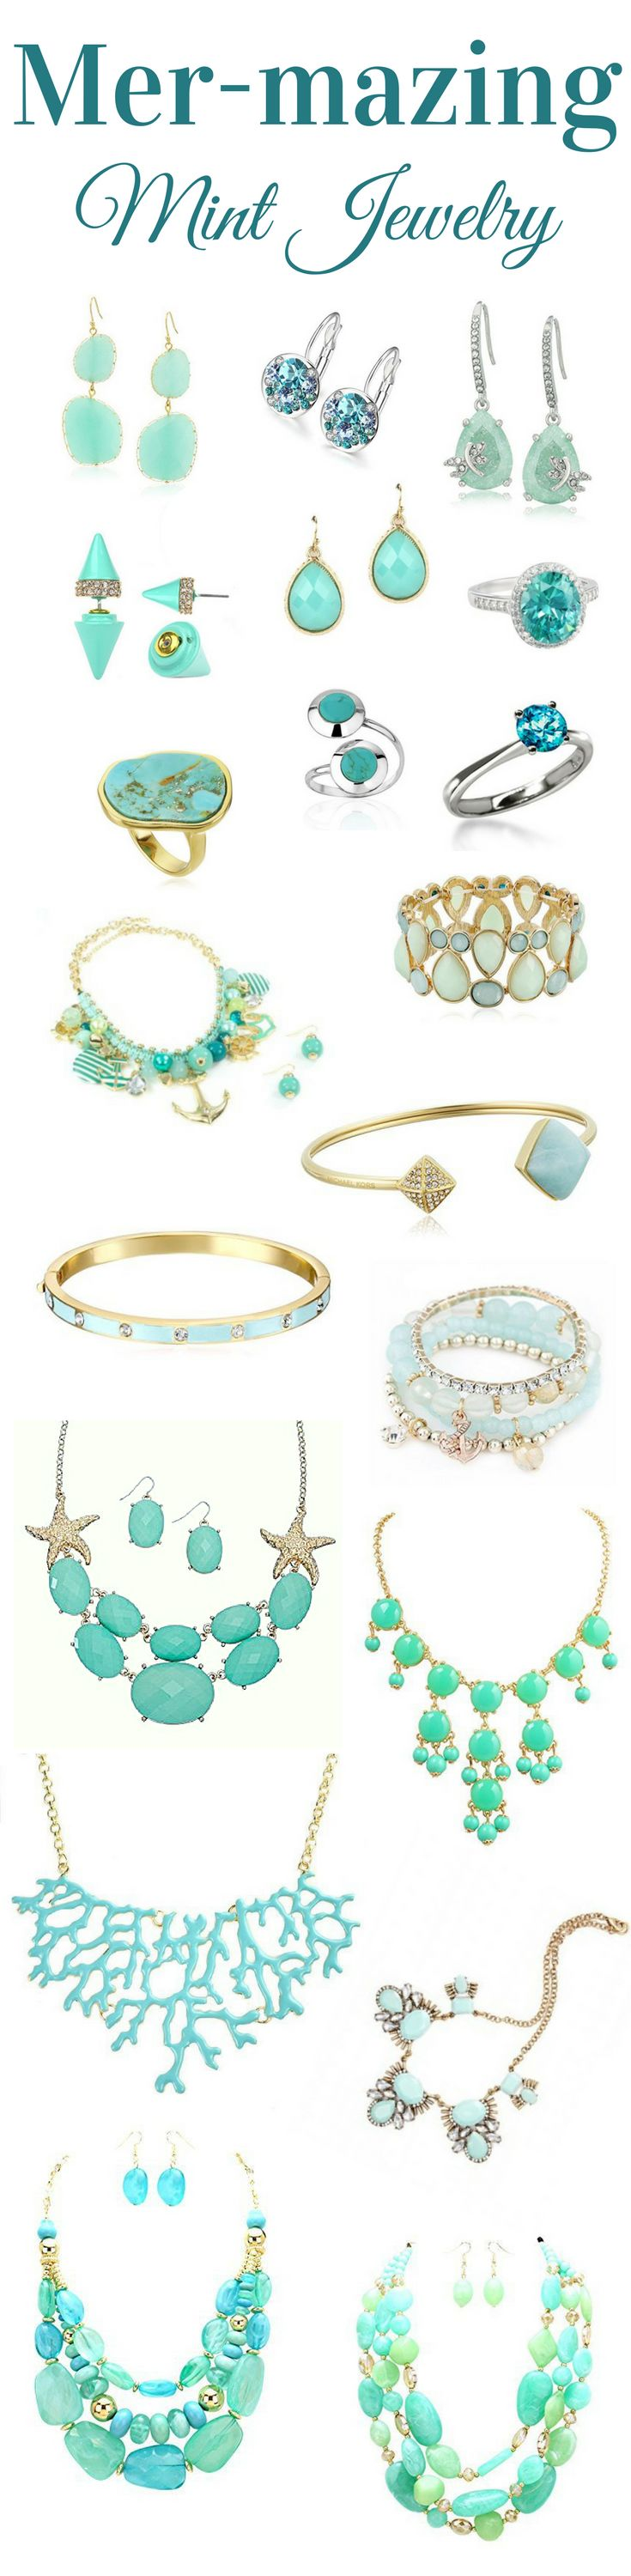 Mer-Mazing Mint Jewelry  Show off the mermaid in you